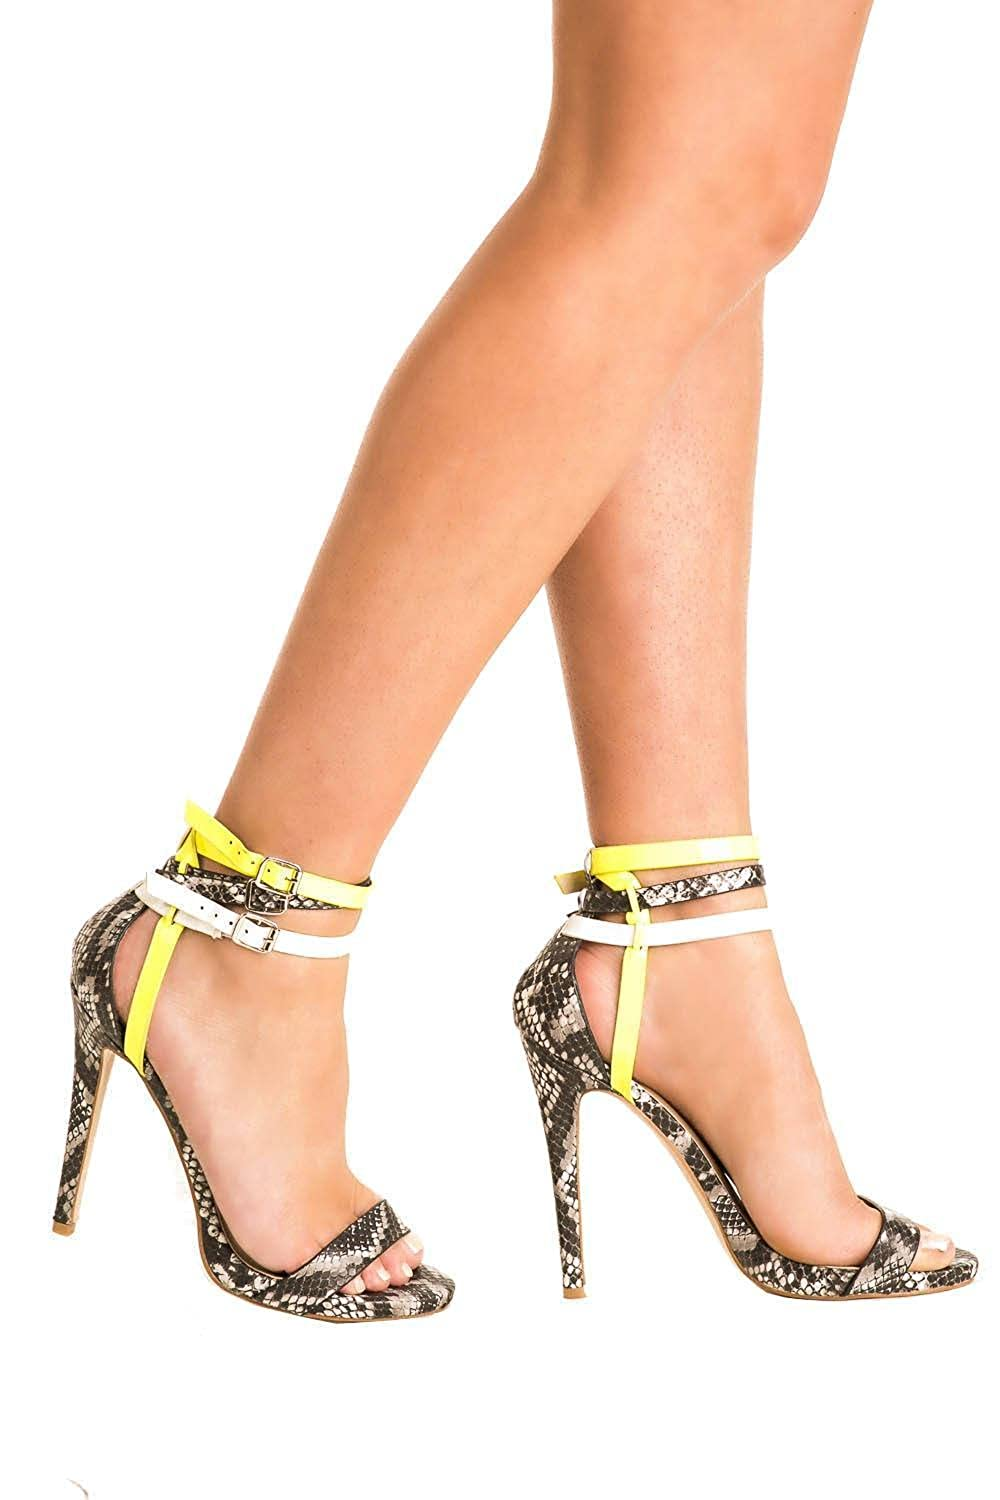 f7ccf5e48d01b4 Pilot womens multi ankle strap high heel snake print sandals in grey shoe  shoes bags jpg